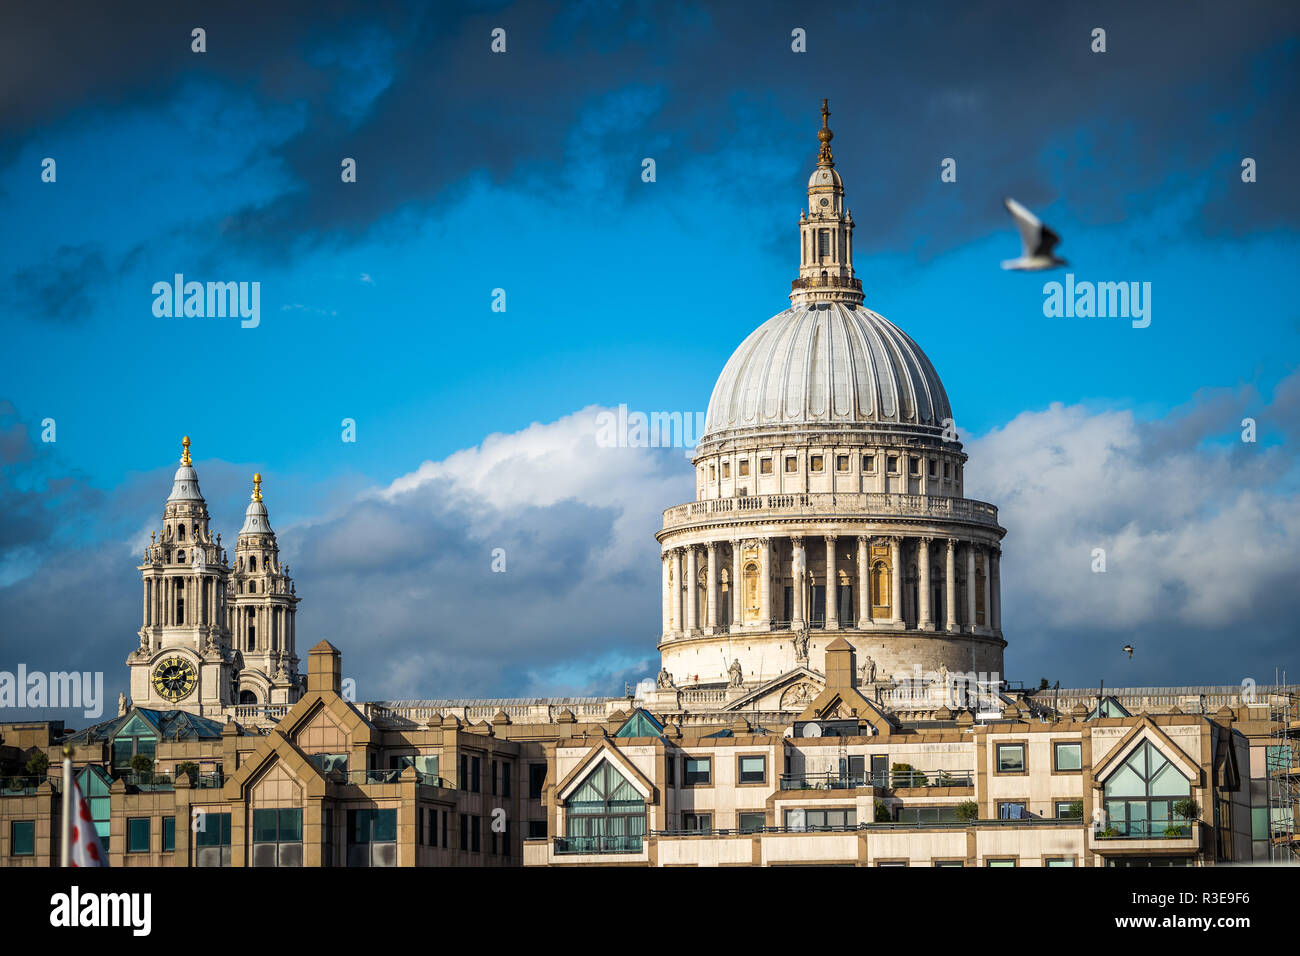 St. Paul's Cathedral, London, England against blue skies on sunny day Stock Photo